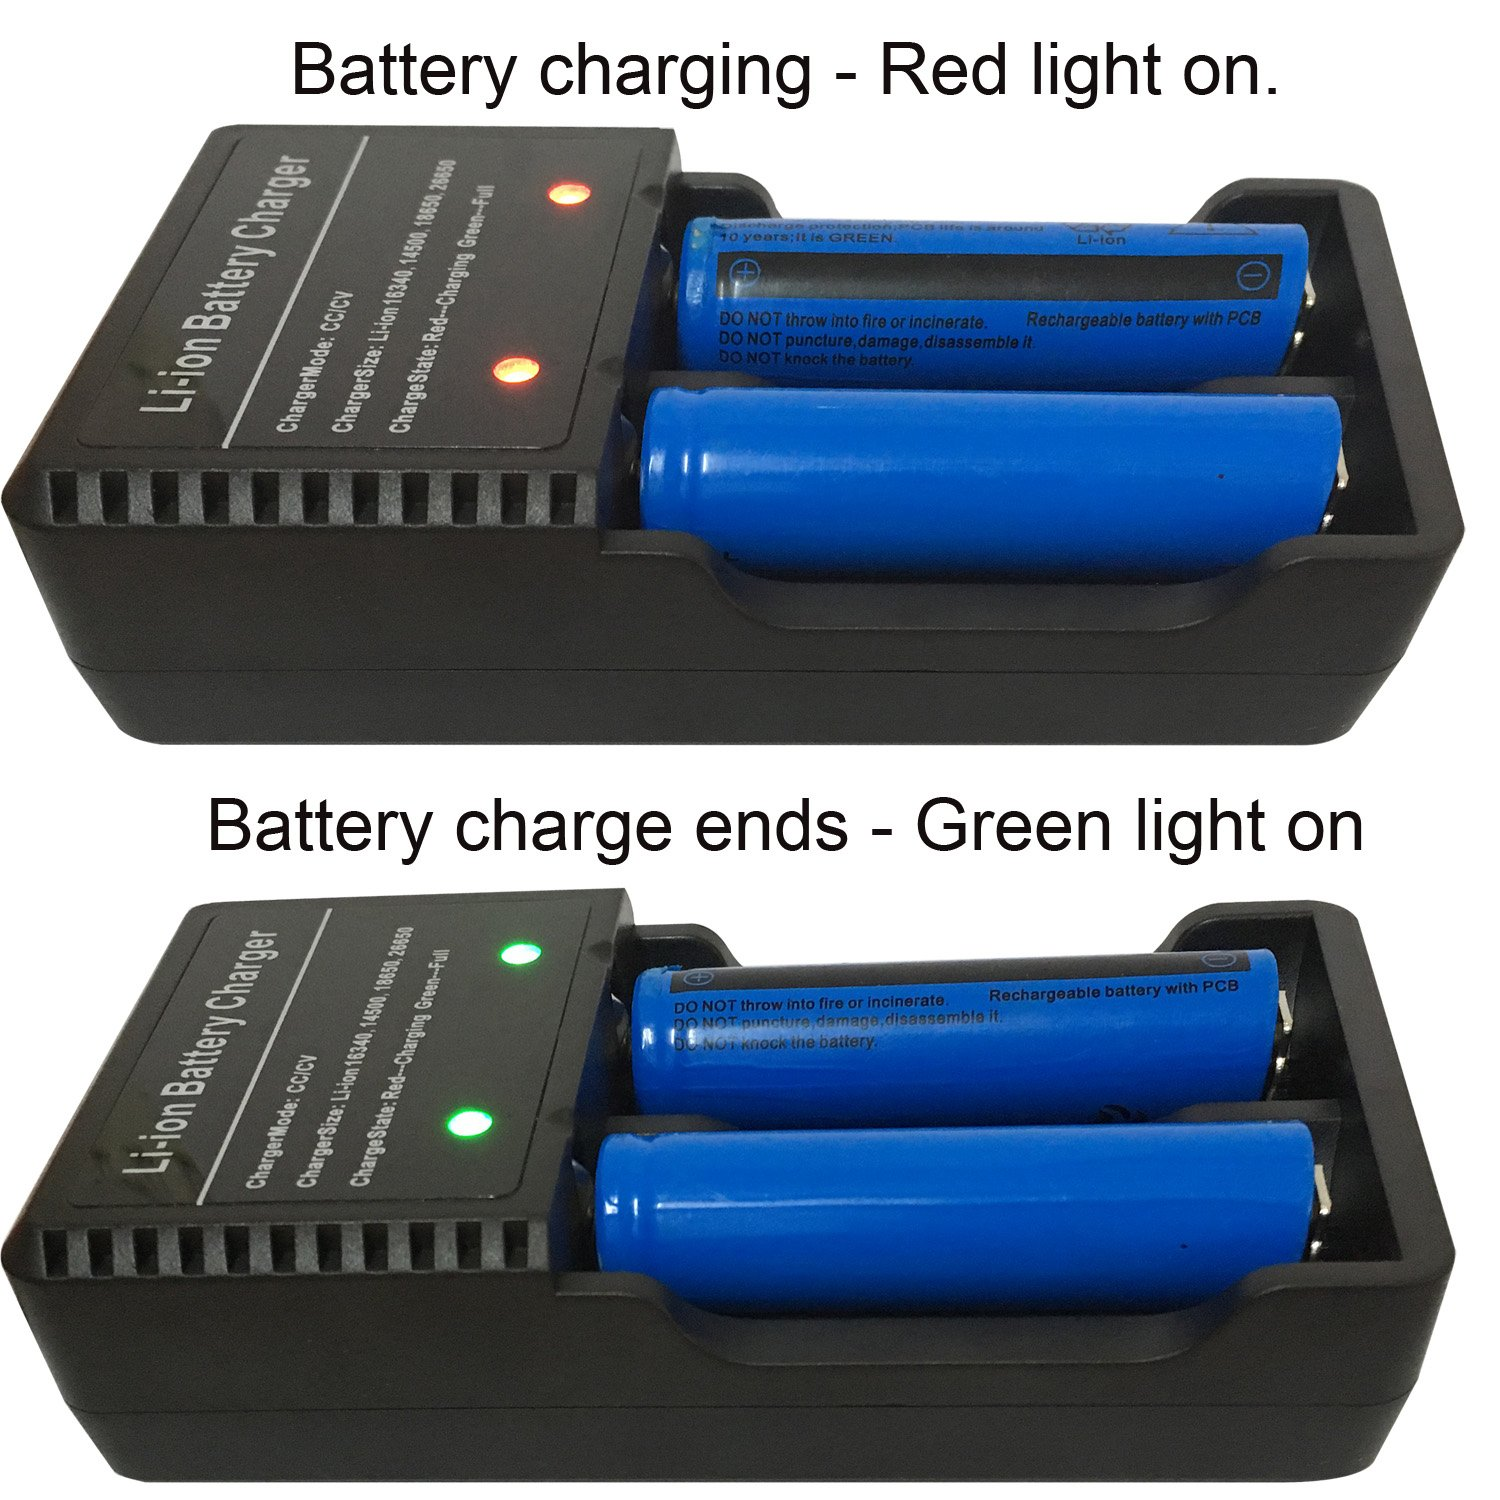 2pcs 18650 Battery And Usb Charger 3000mah 37v Li Xpower 2600mah Liion W Protection Circuit Free Ion Rechargeable For Headlamp Handheld Flashlights Portable Fan Etc